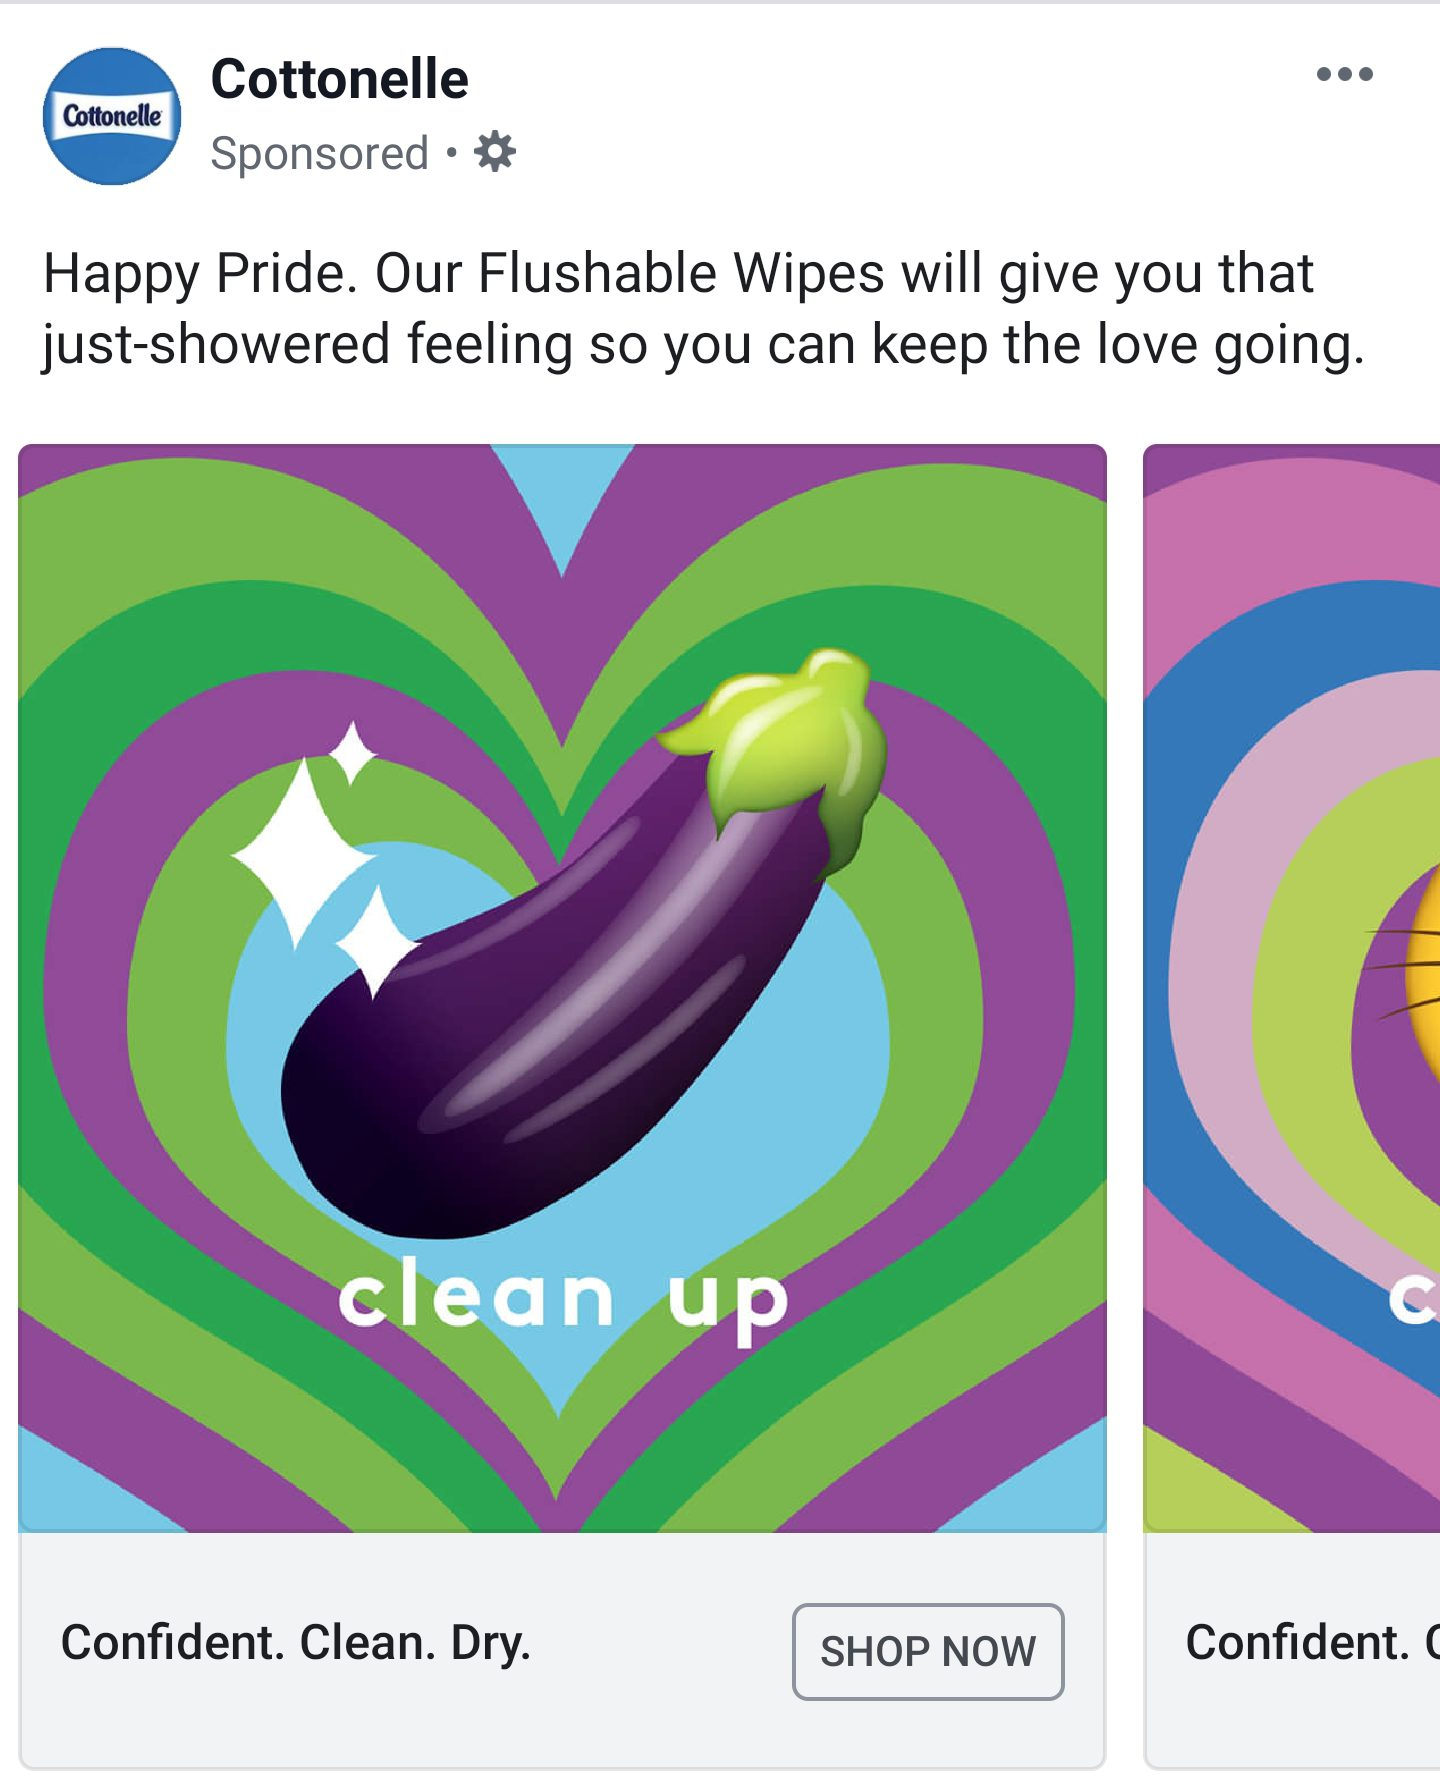 7 corporations that need to calm down with their Pride ads